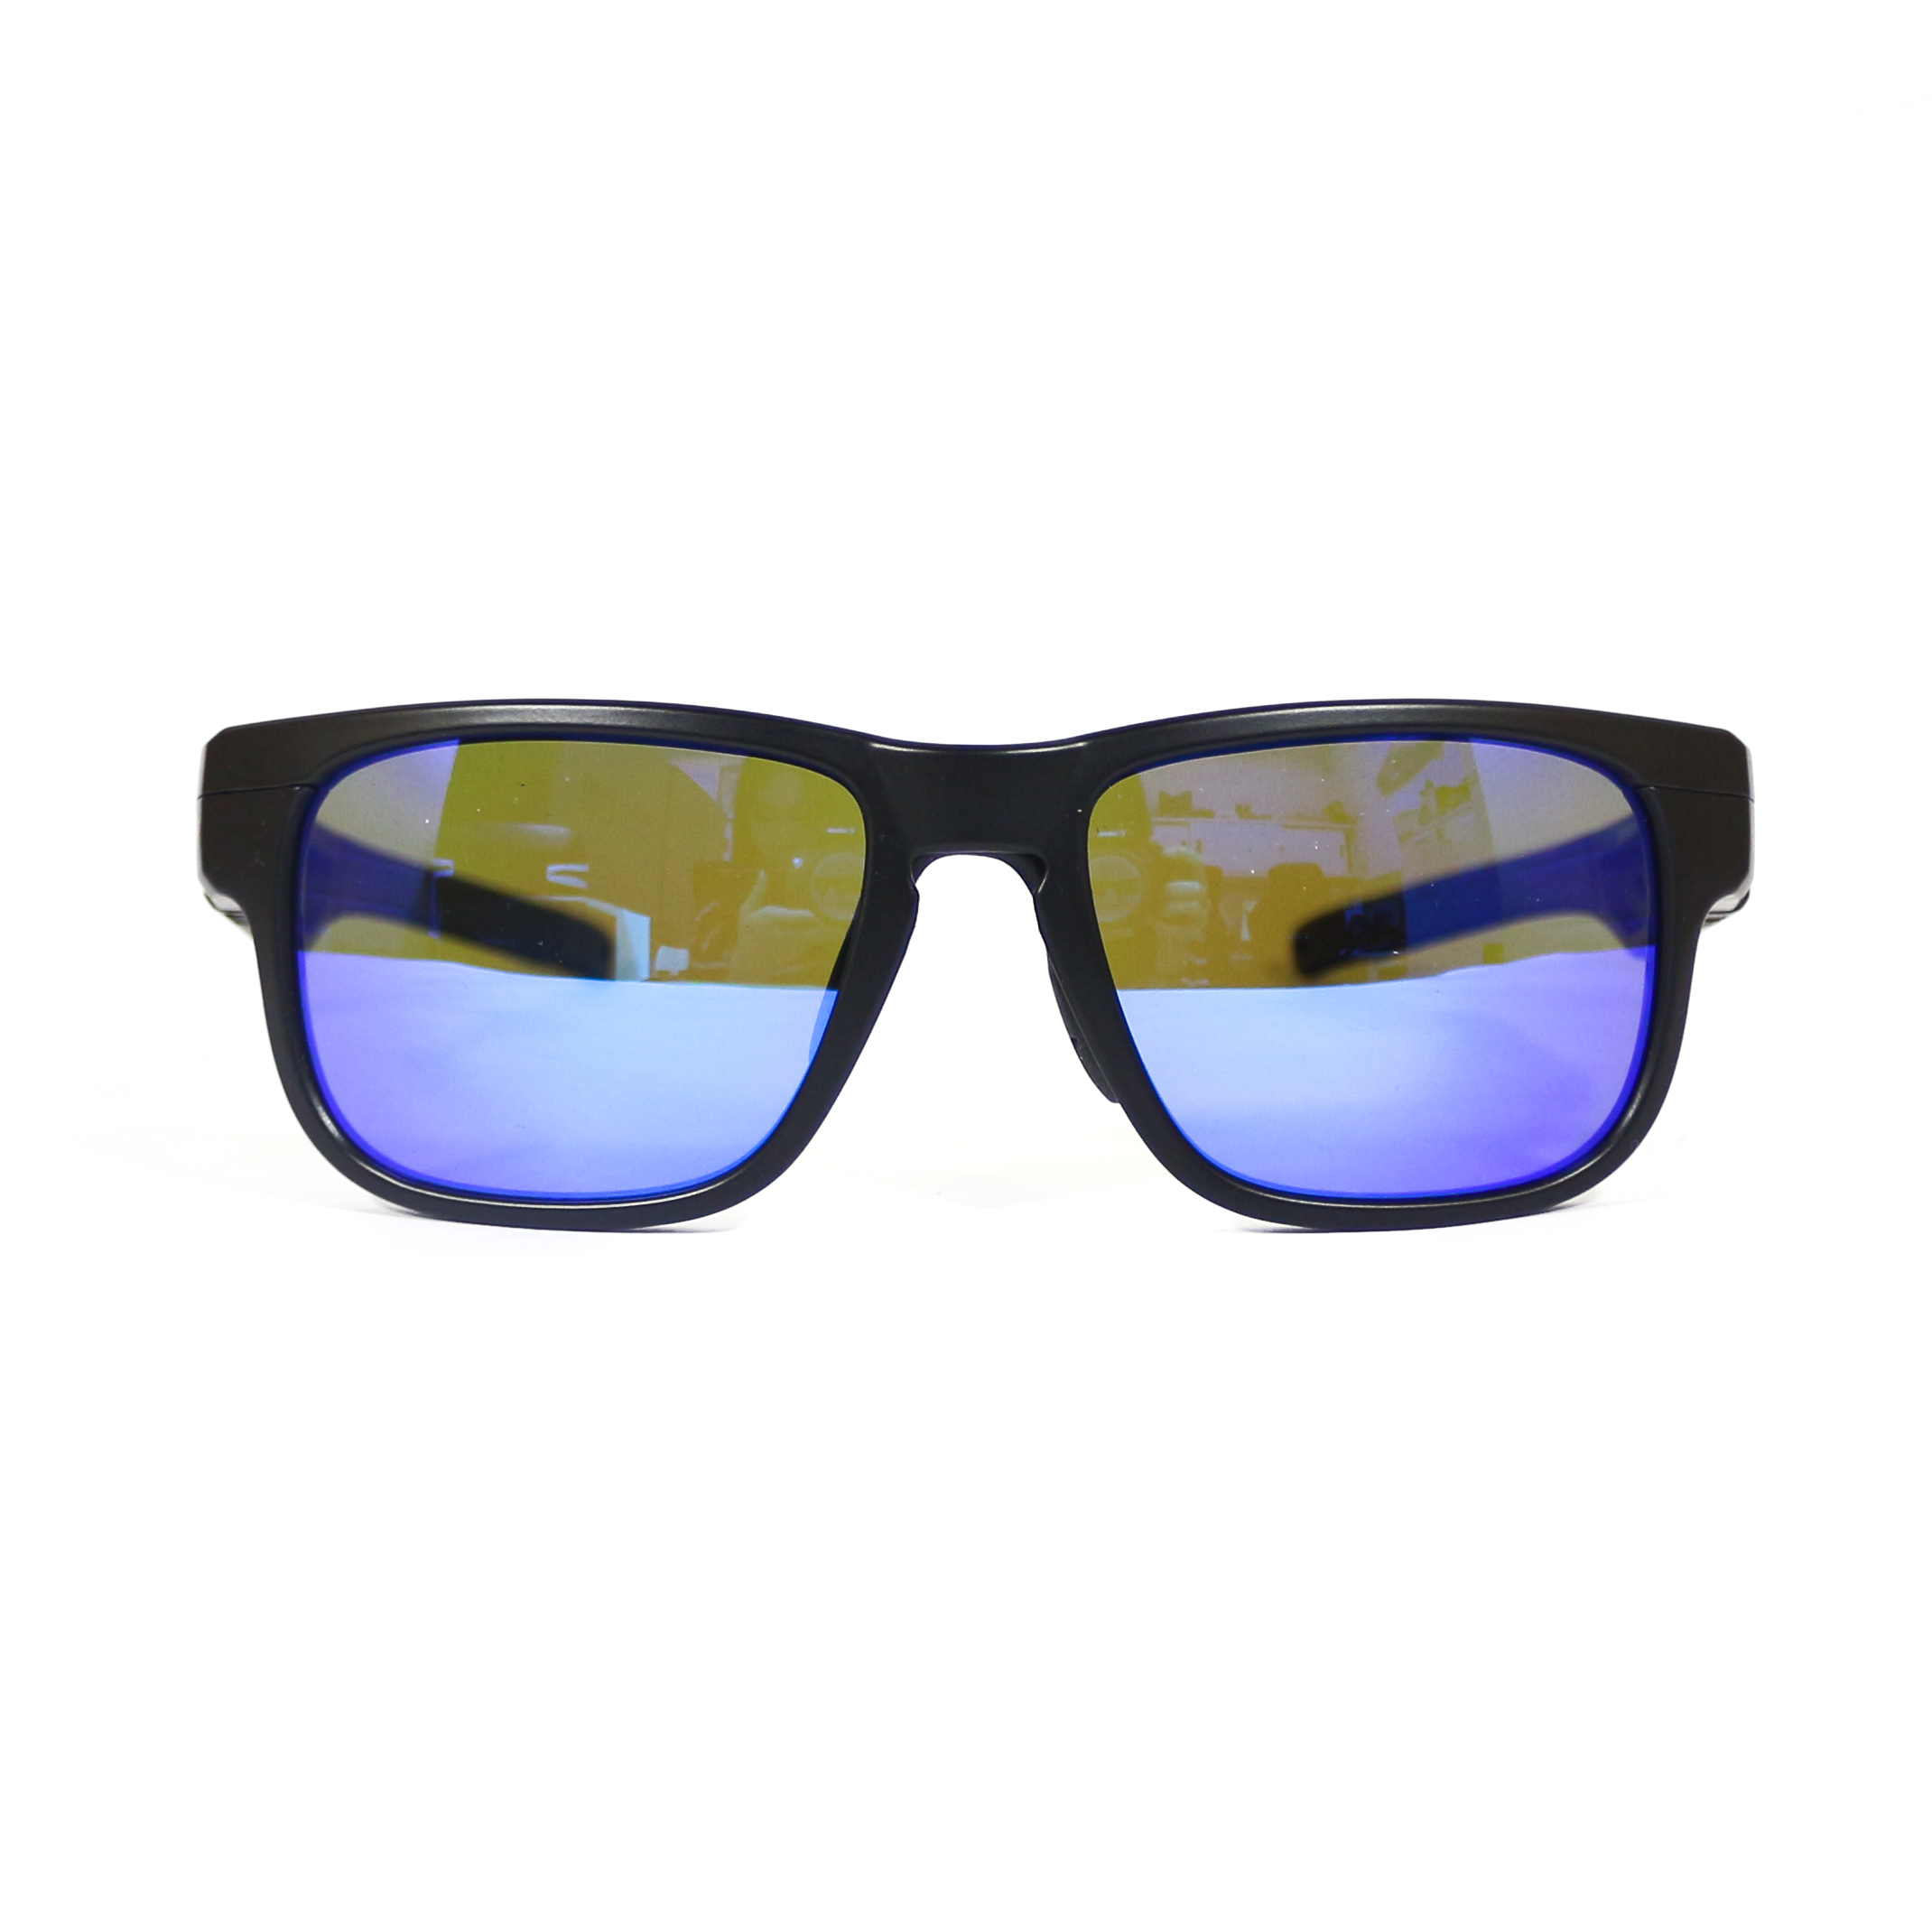 Zeal Polarised Fishing Sunglasses Bunny Walk BW-0184F Clr Blk / Gray (1218)